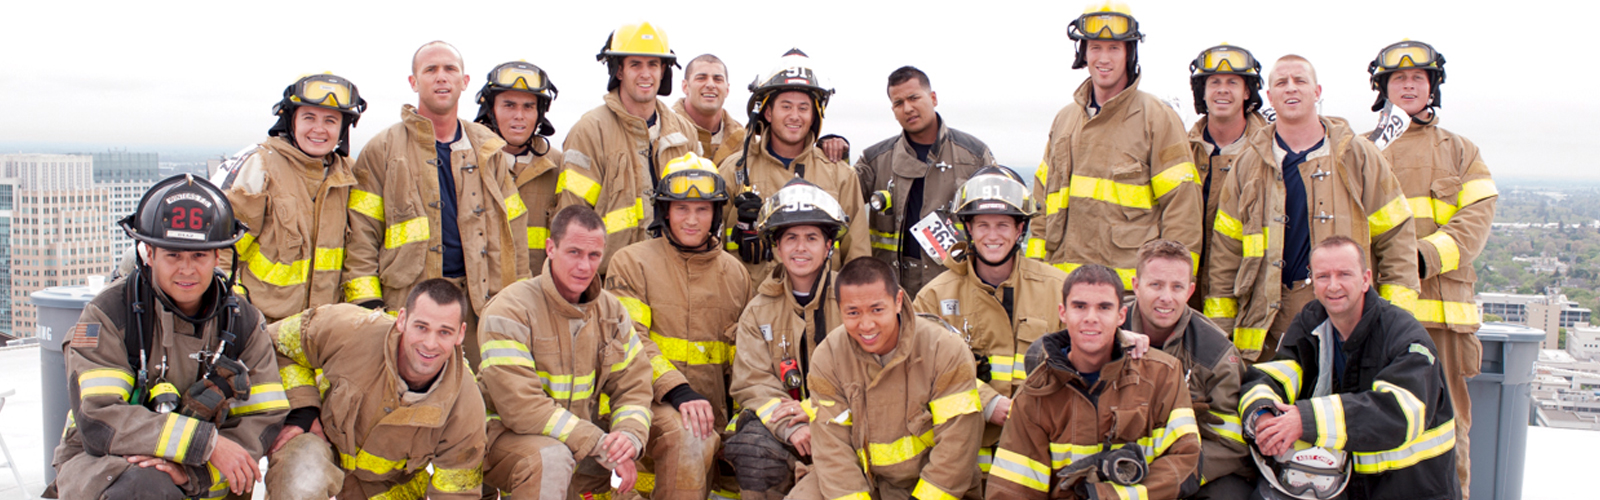 group of firefighters posing on a rooftop